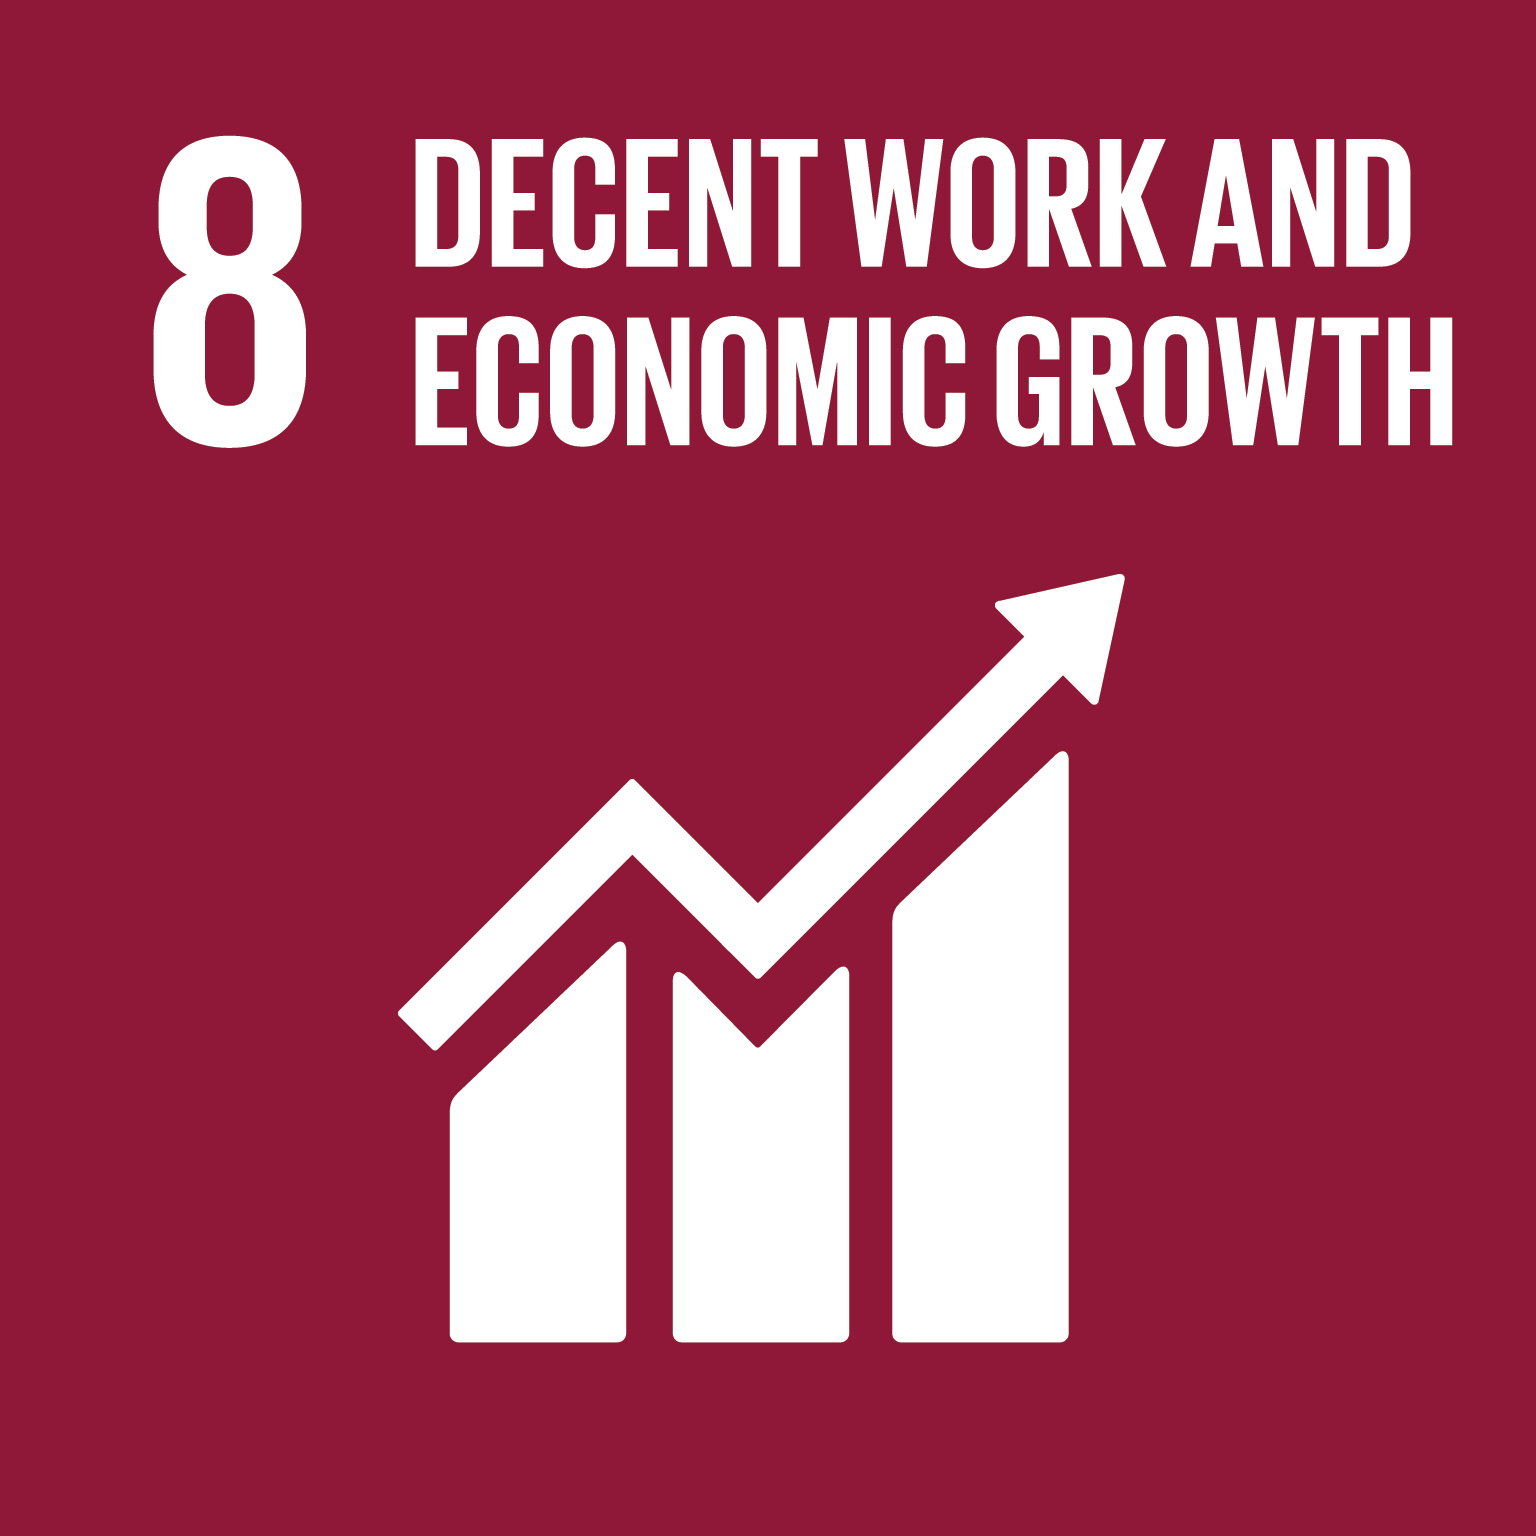 Decent work and economic growth logo.